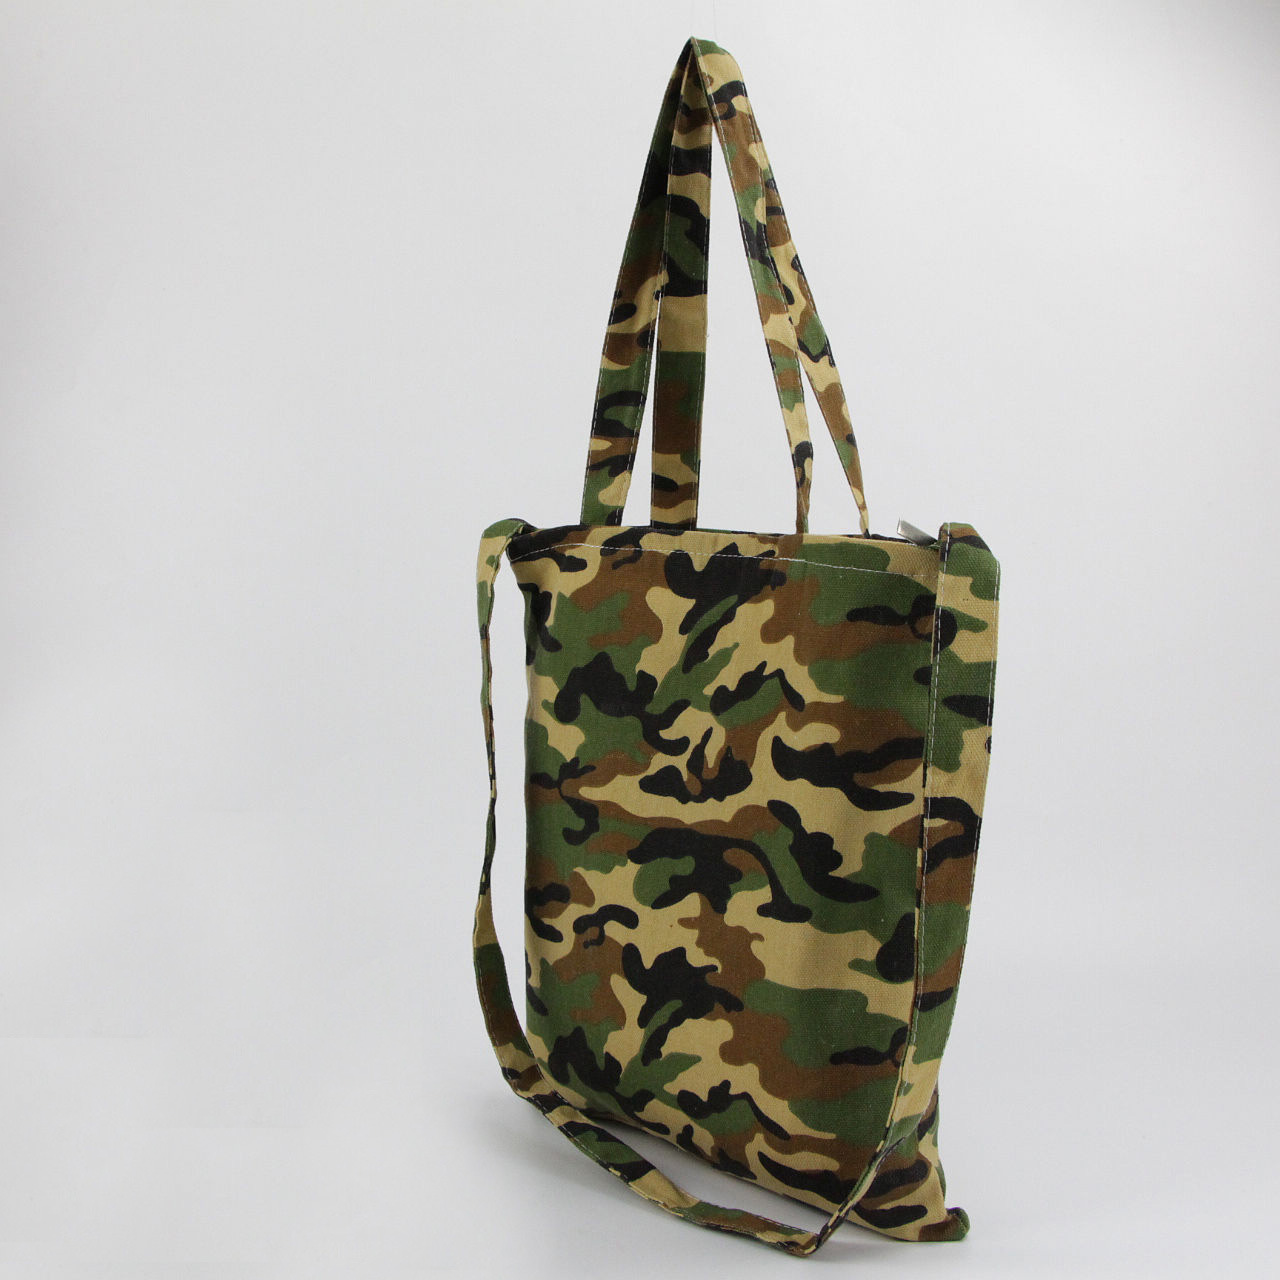 Manufacturers camouflage cotton canvas shoulder bag environmental single shoulder aslant shopping bag can be printed LOGO